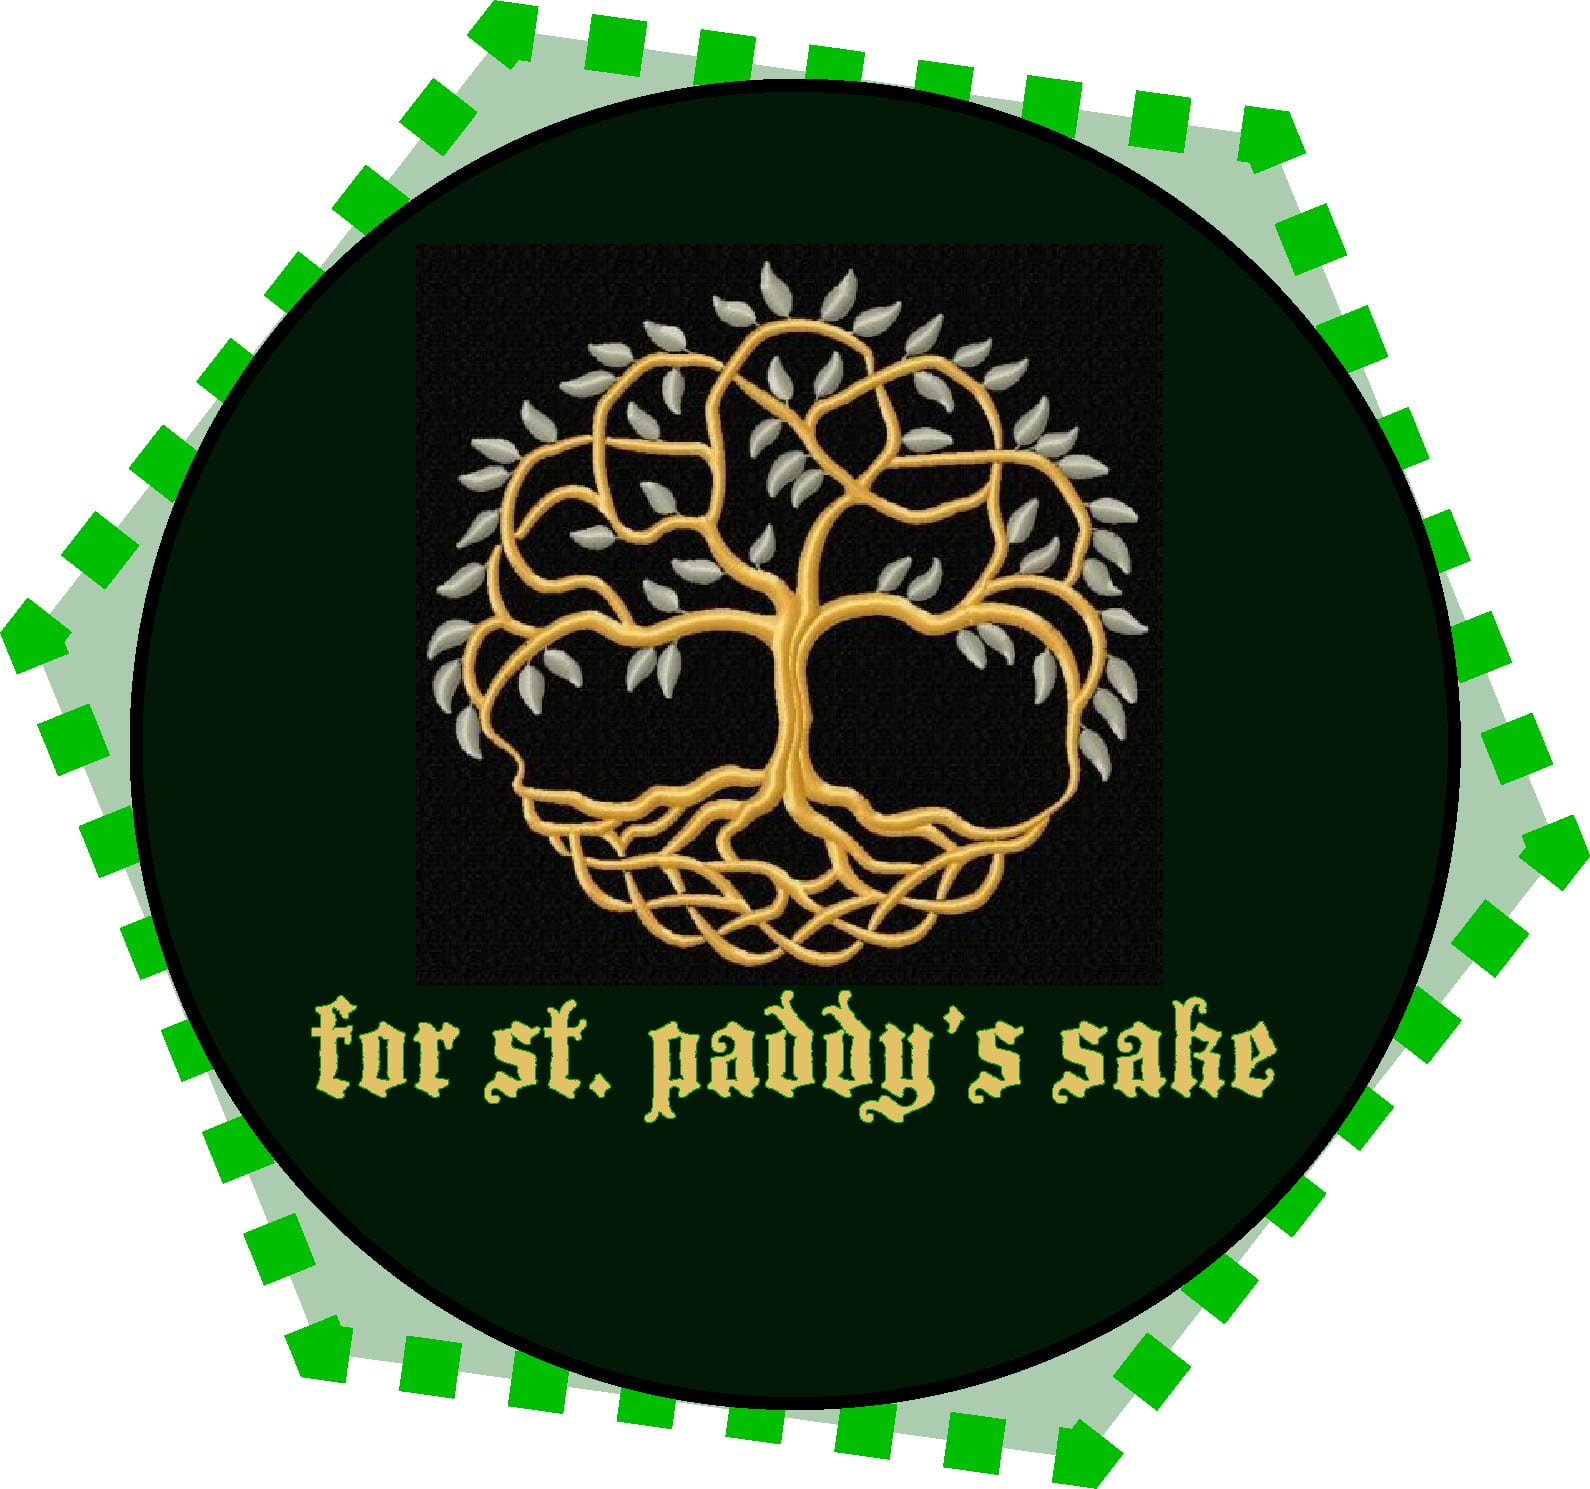 For St. Paddy's sake logo with tree